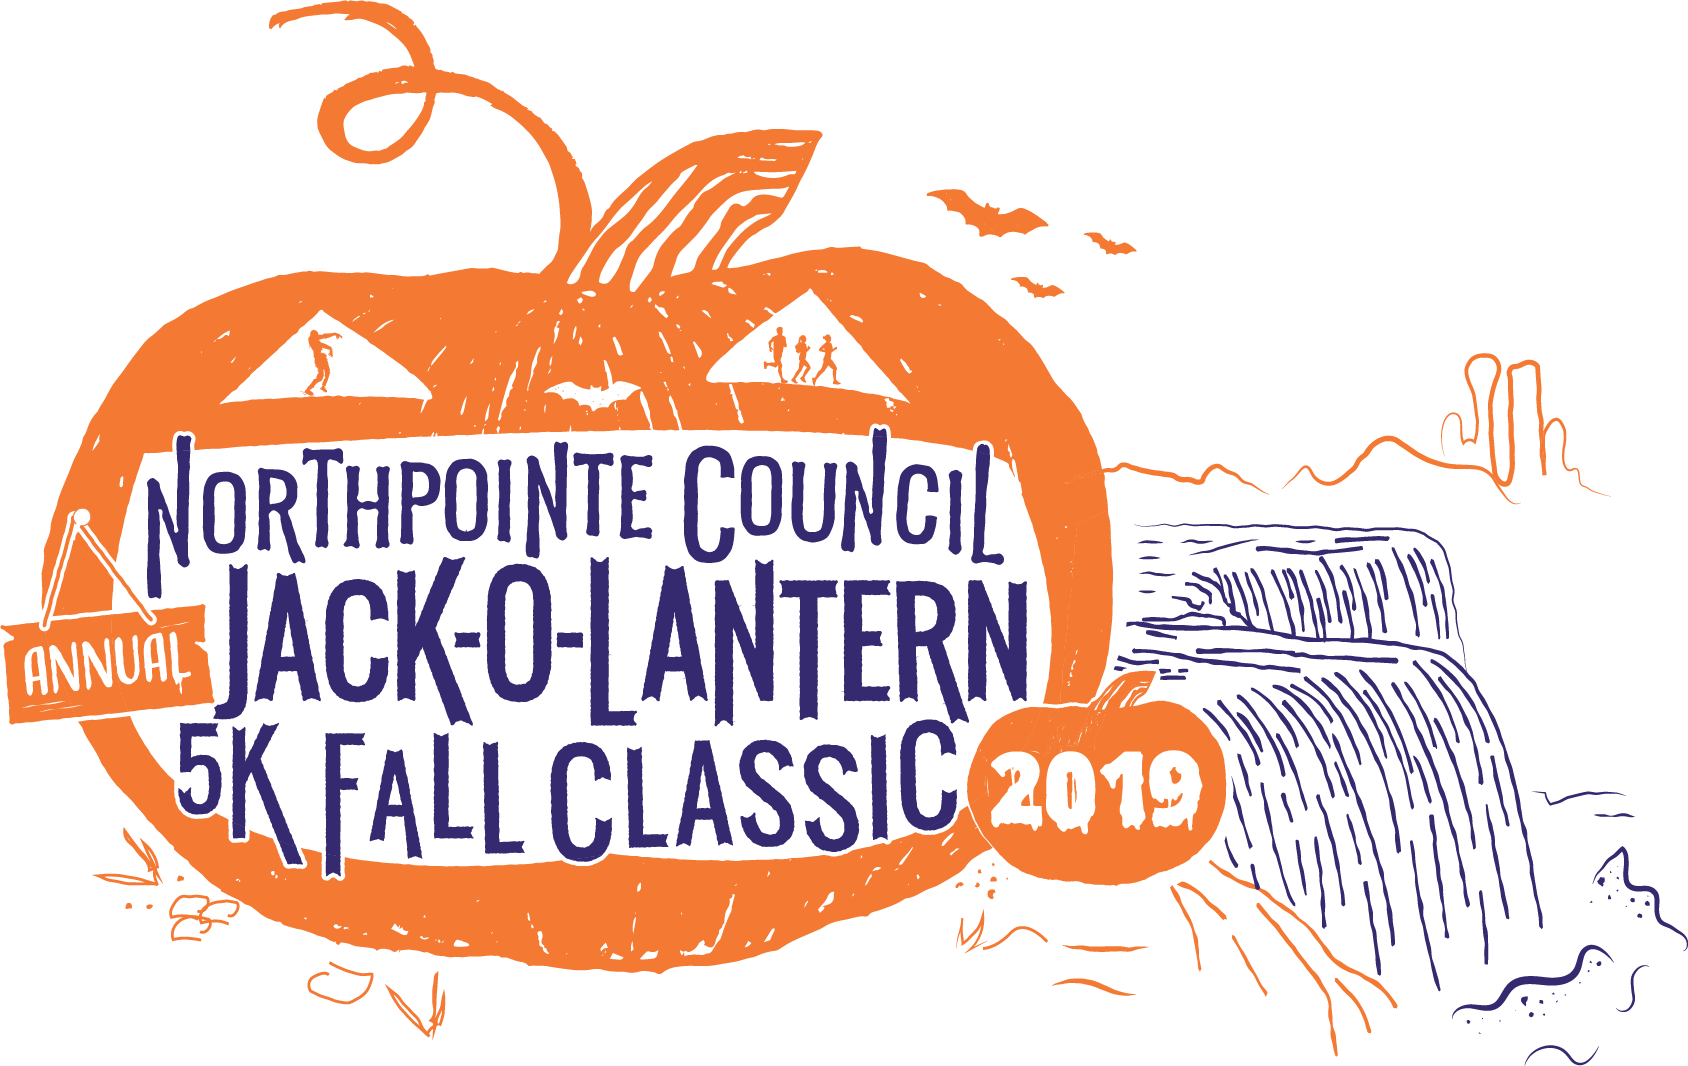 Northpointe_Council_halloweengraphic.png